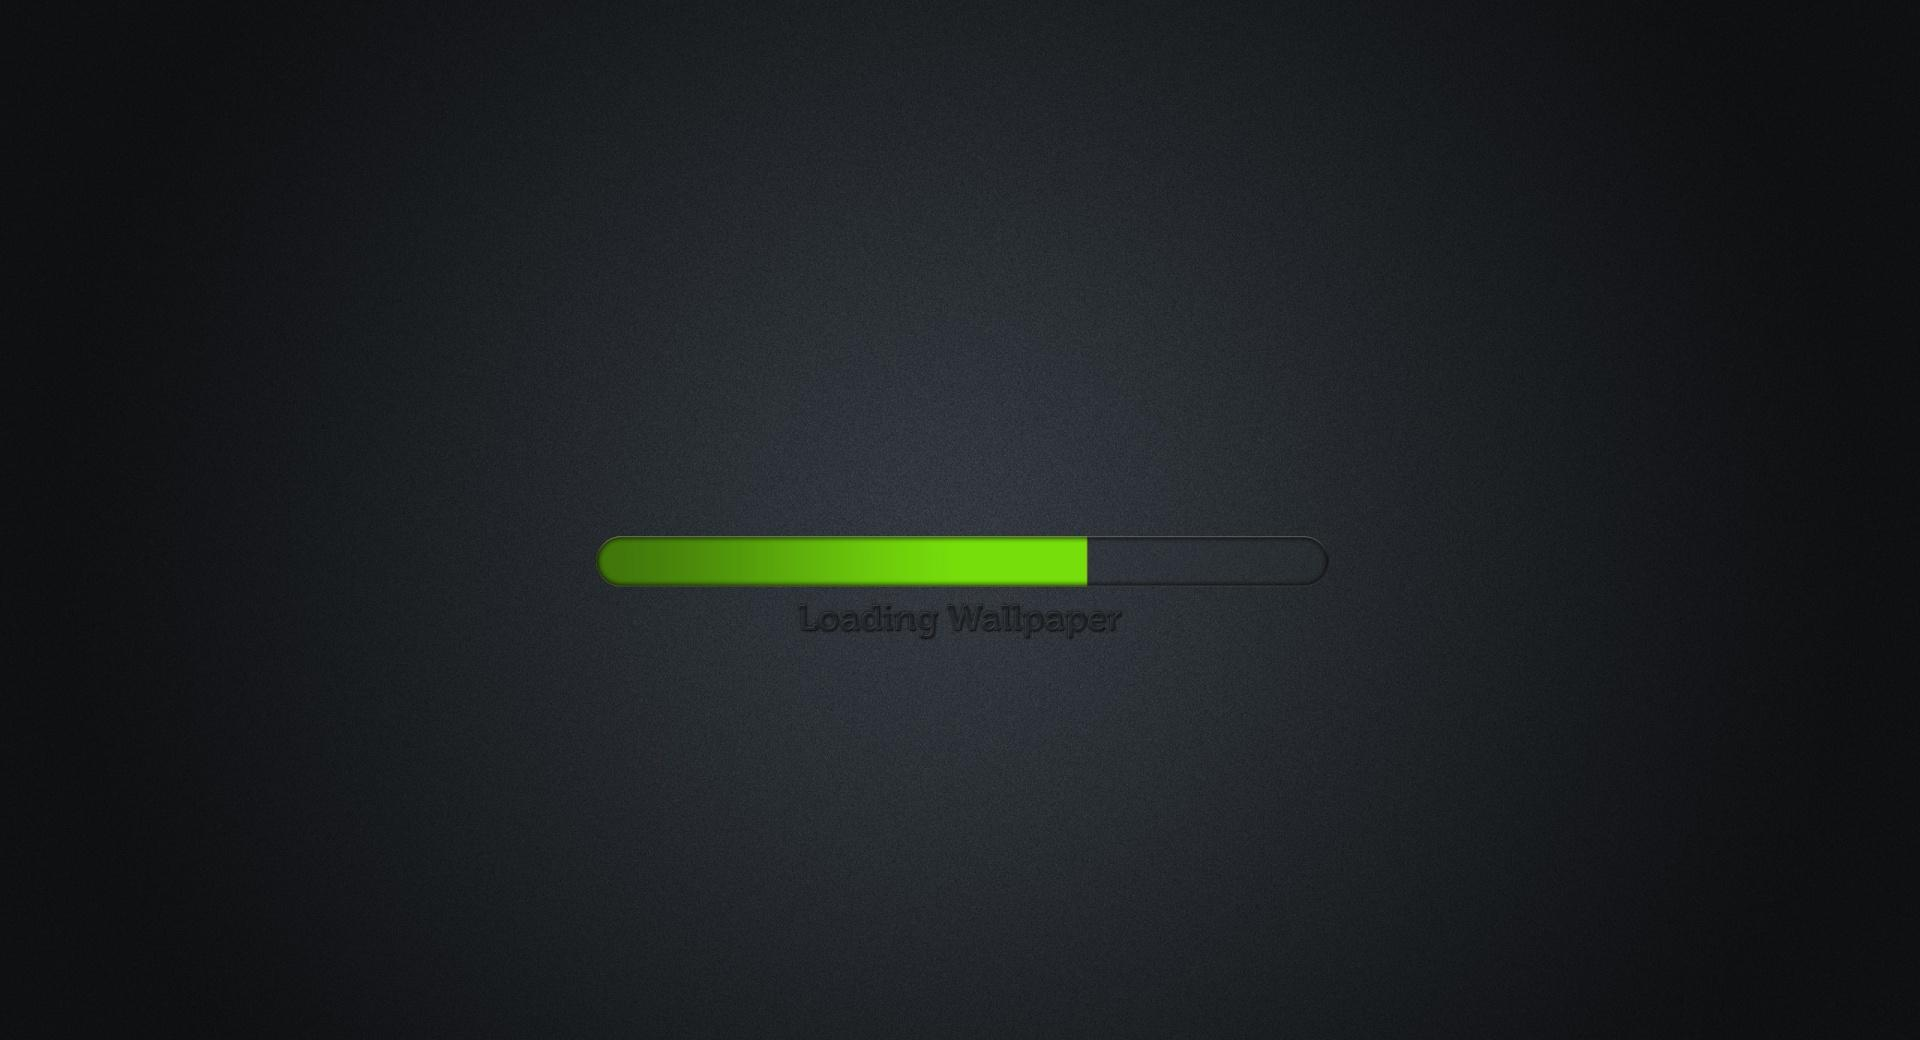 Loading Process wallpapers HD quality